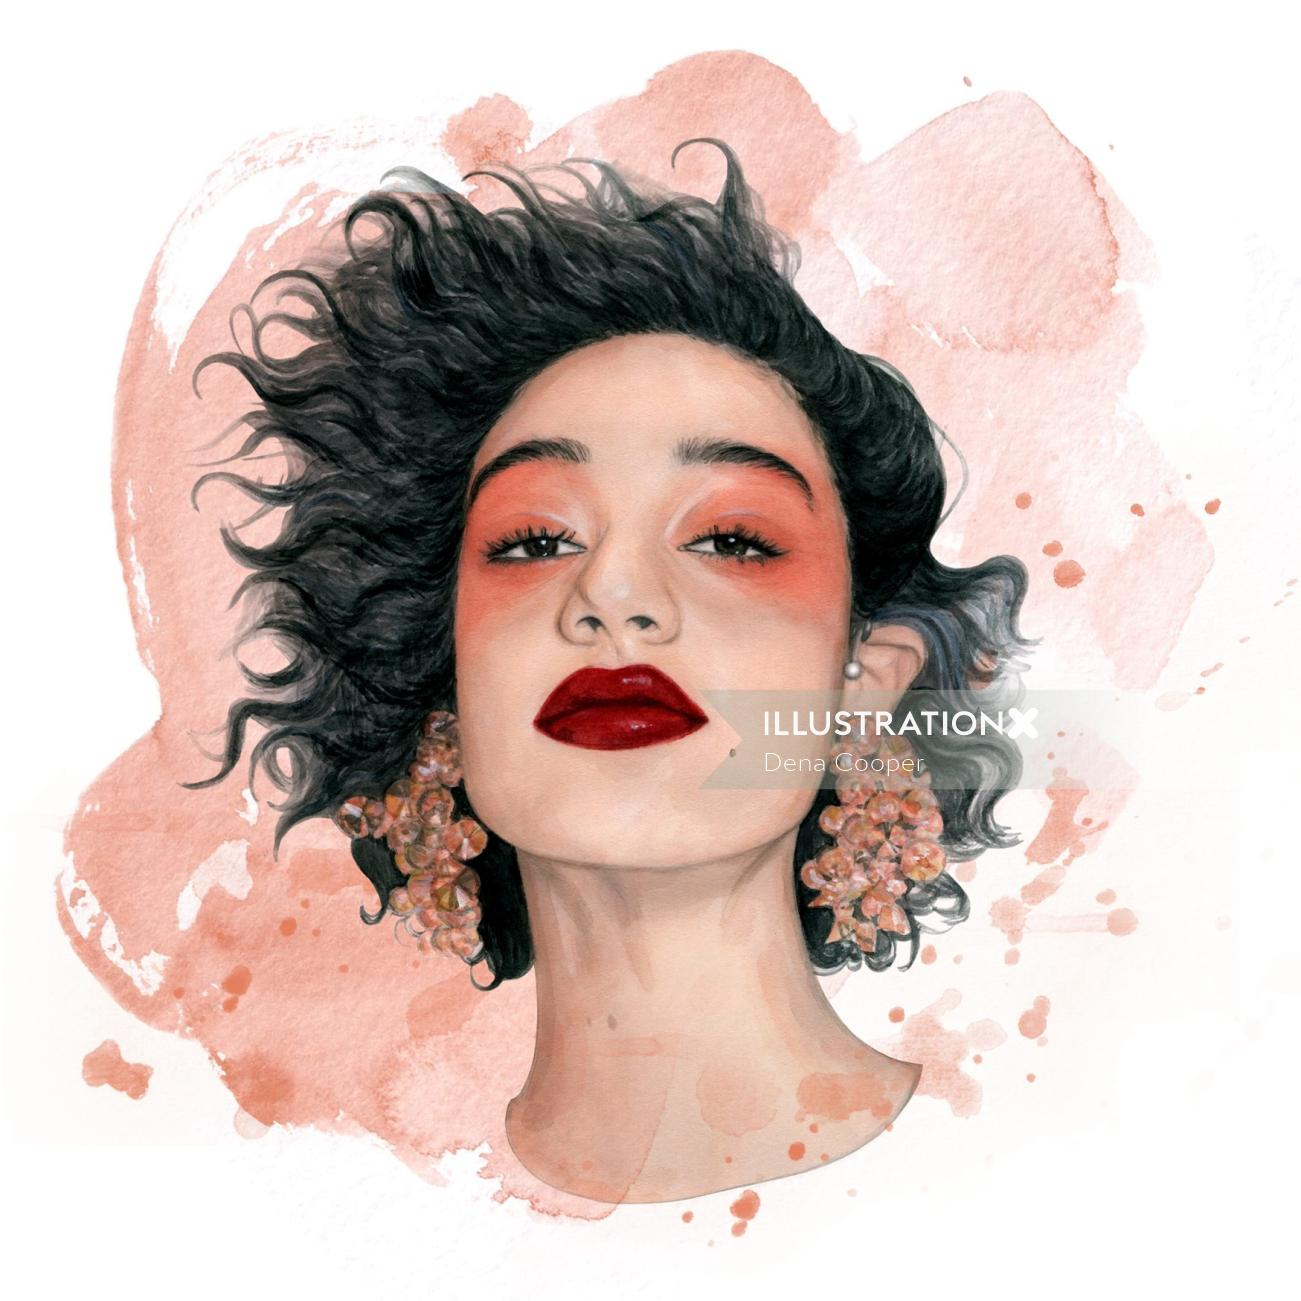 Painting of a girl with big earrings